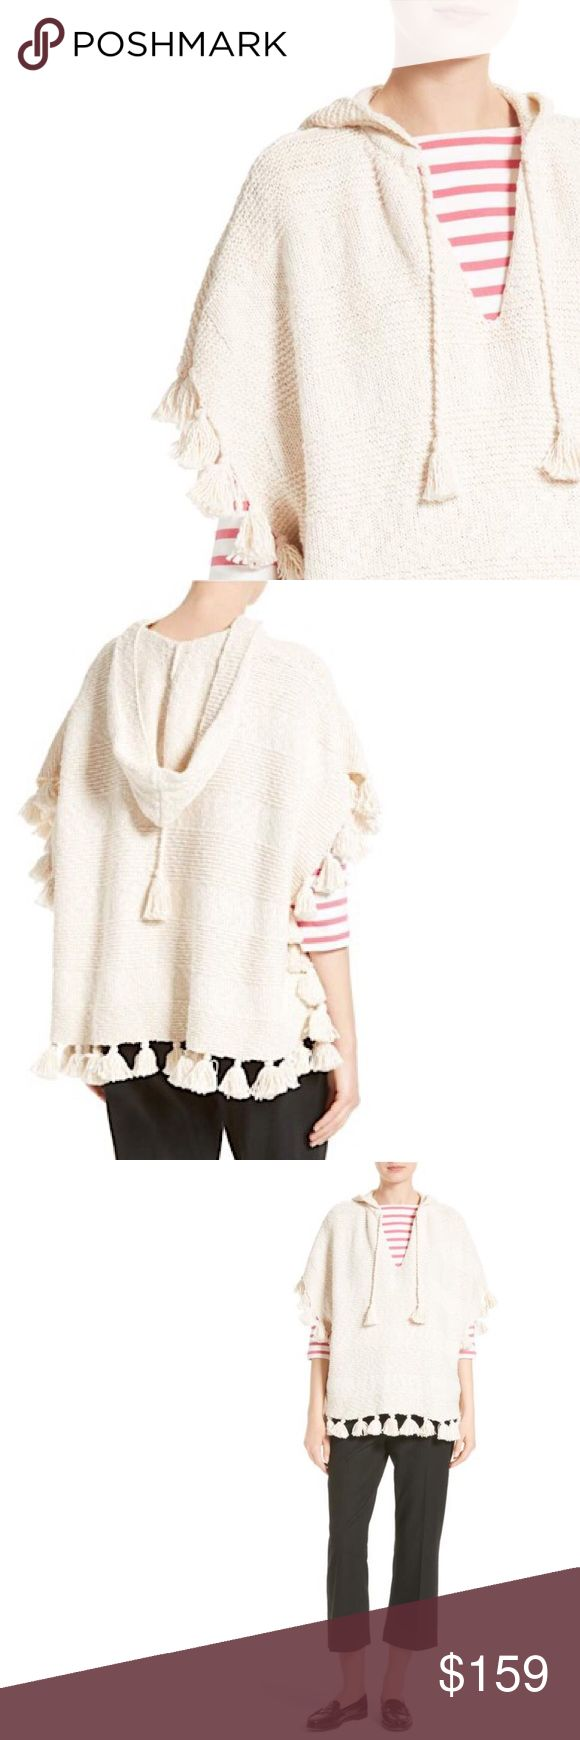 """🆕💕 Kate Spade Tassel poncho Cape NWT Beautiful Kate Spade chunky tassels enhance the richly textured design of a hooded cotton knit poncho for a playful layers piece. NWT 💕tie at V- neck  💕short sleeves 💕attached hood 💕length 27"""" tassels 2"""" kate spade Jackets & Coats Capes"""